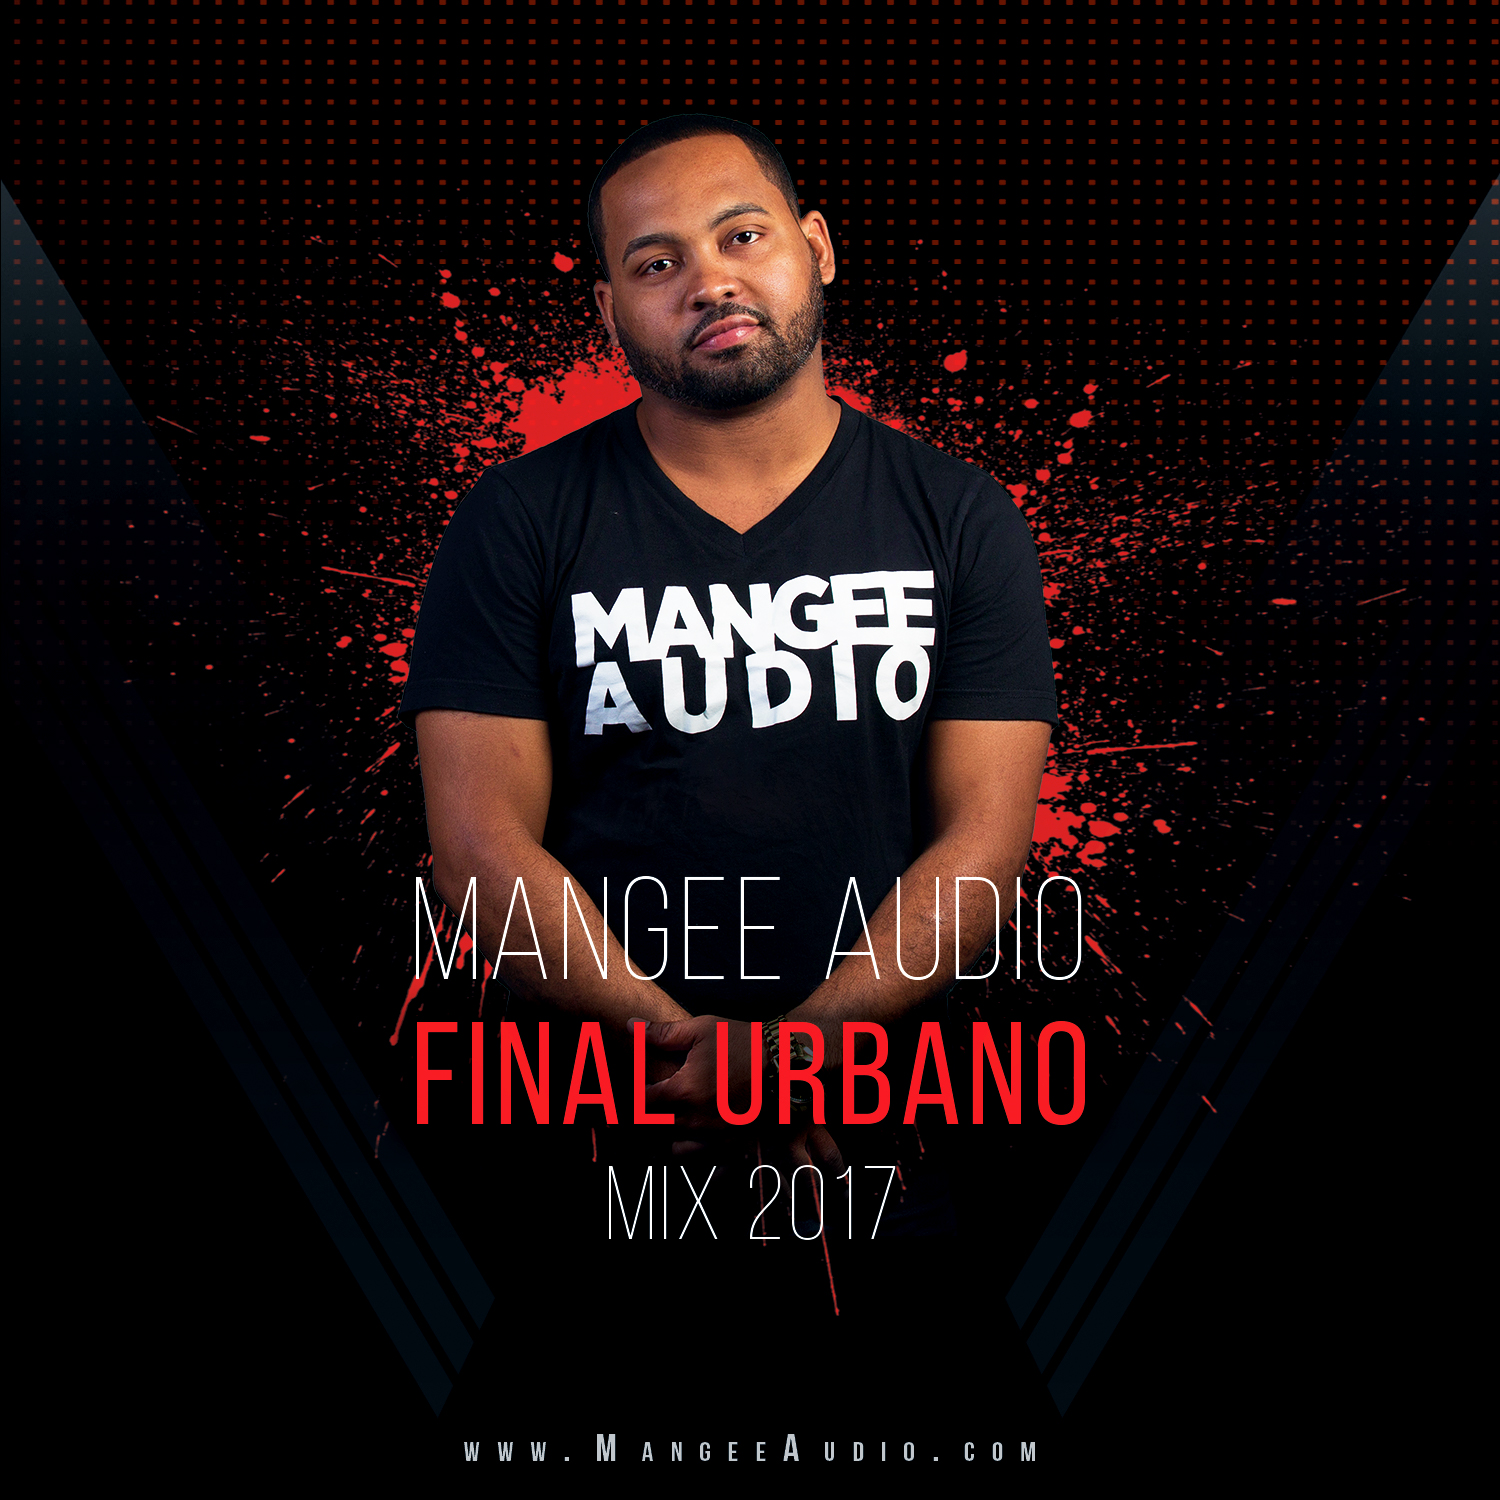 Mangee Audio - Final Urbano Mix 2017